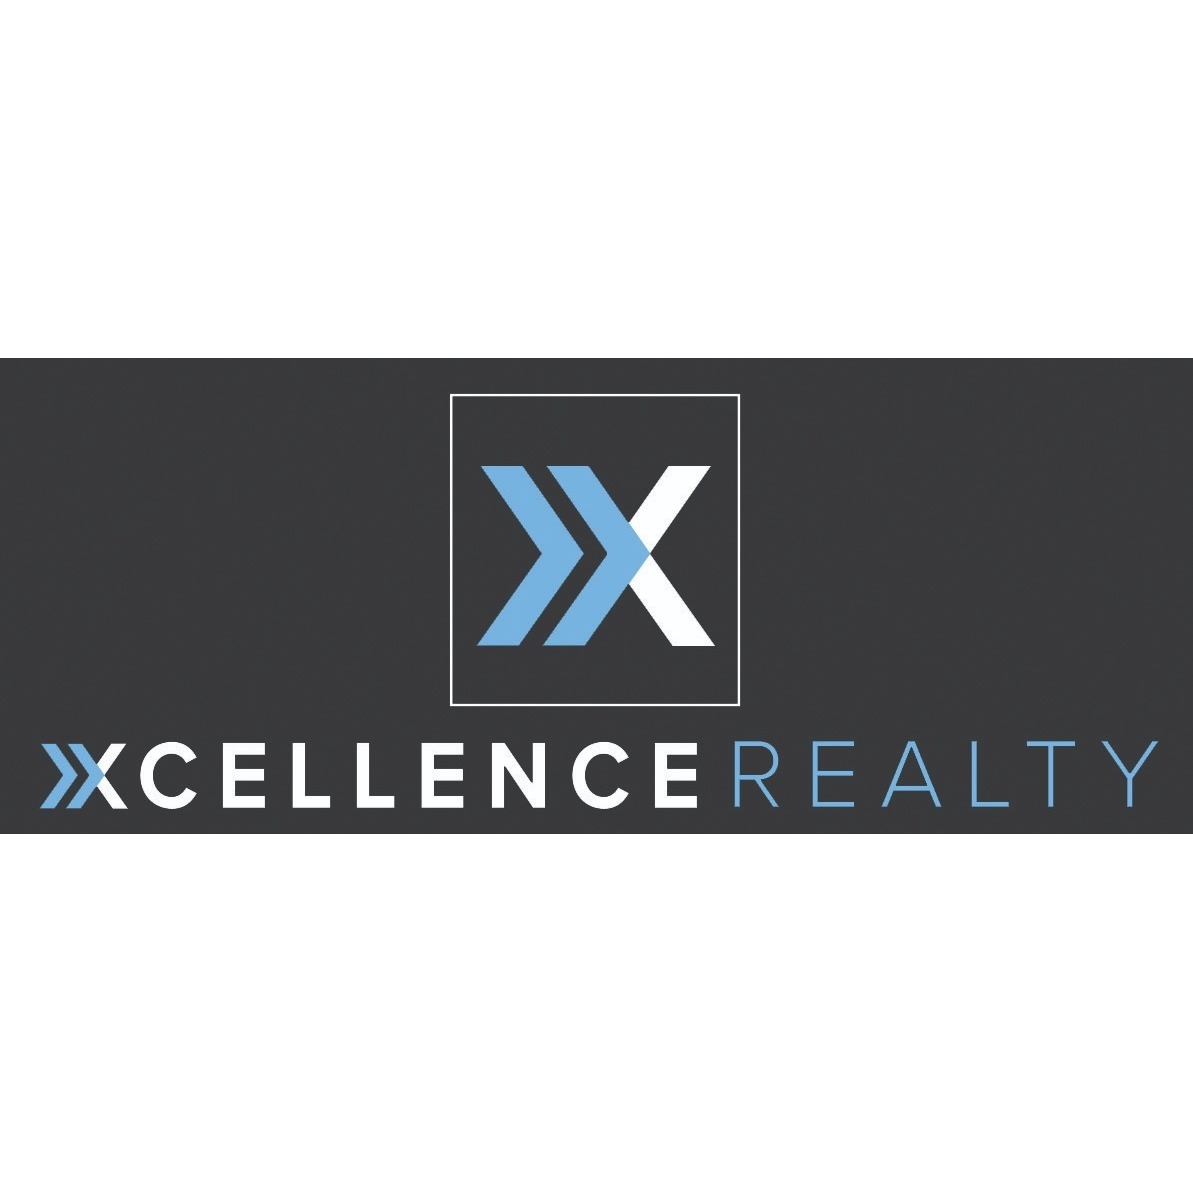 Tanya Chun with Xcellence Realty Inc